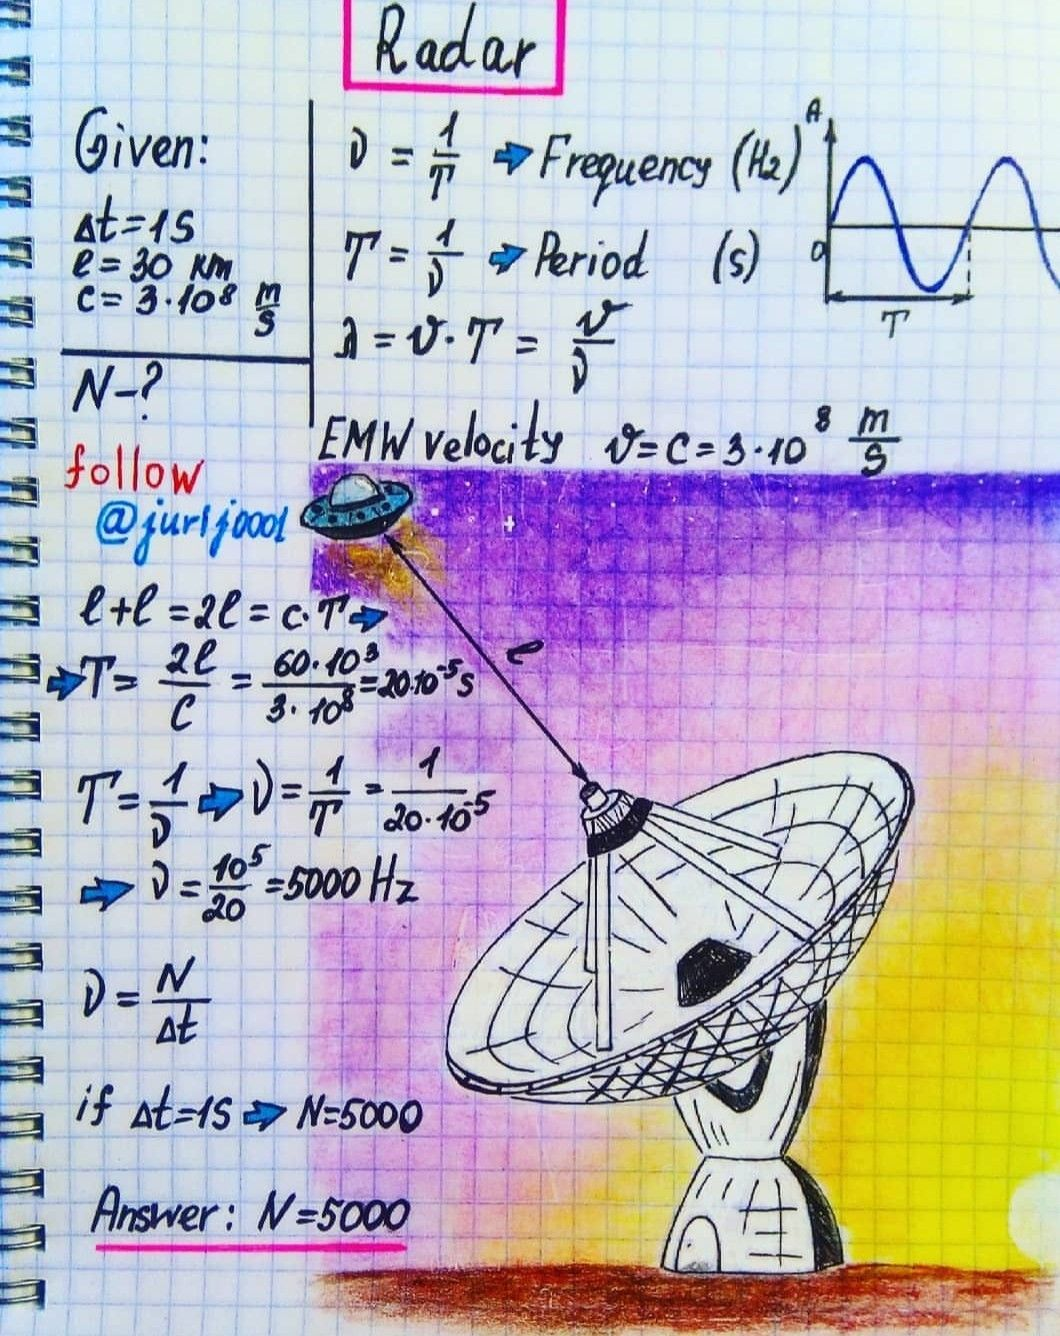 Physics And Mathematics Physics And Mathematics Education Quotes Quotes Leadership Early Childhood Education Educatio Physics Problems Physics Physics Projects